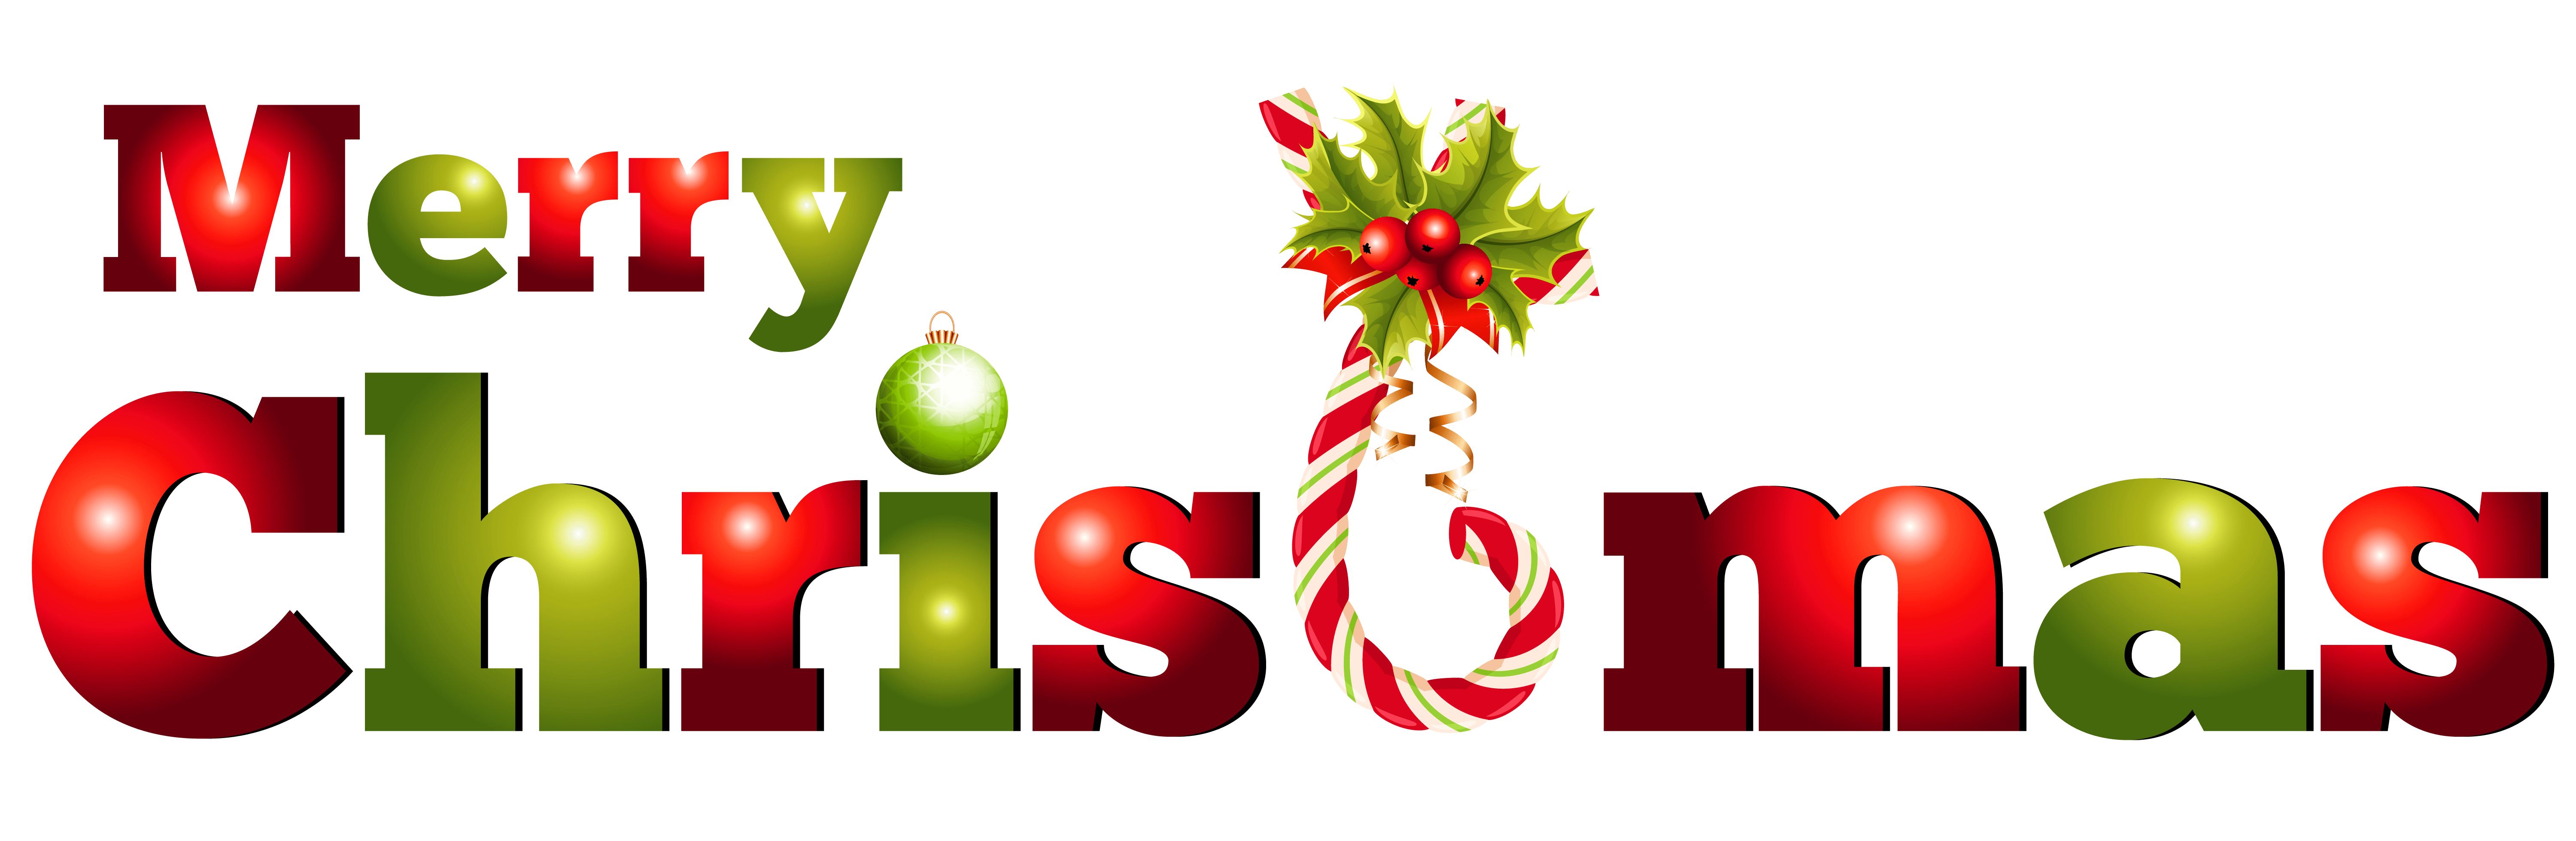 Merry christmas clipart words png free library Merry Christmas Clip Art Banner – Merry Christmas And Happy New Year ... png free library